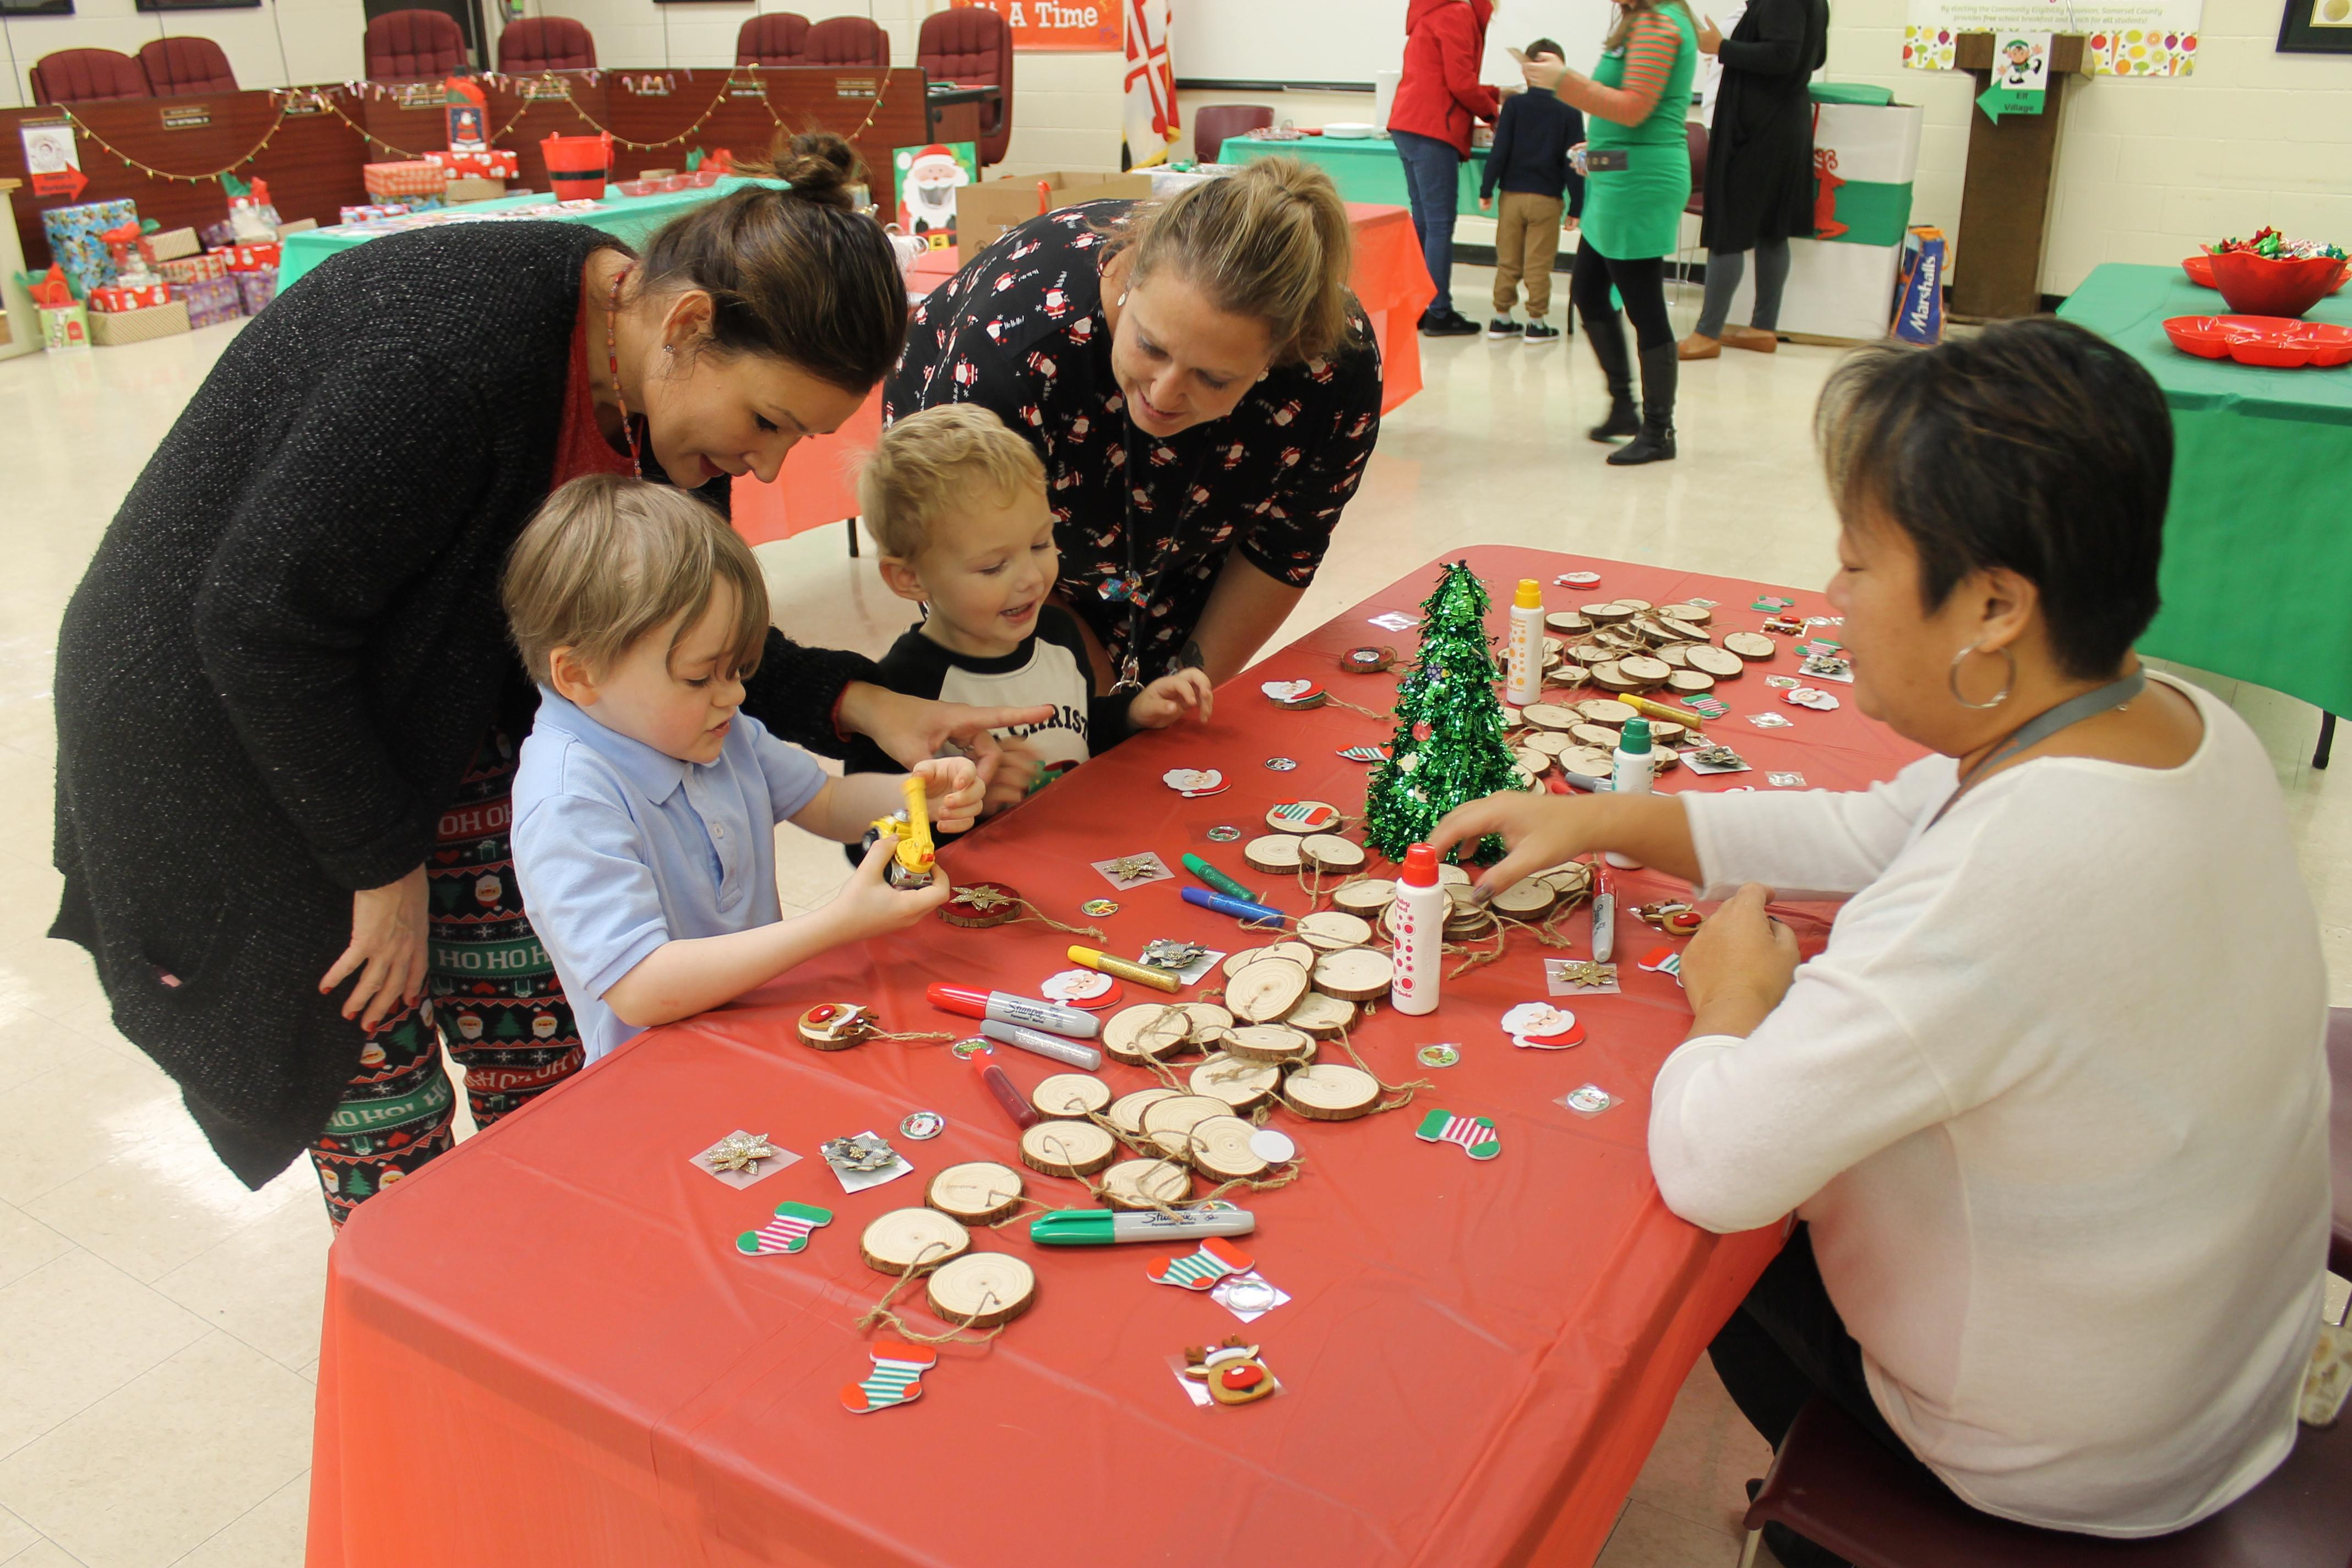 children and adults at a table making Christmas ornaments